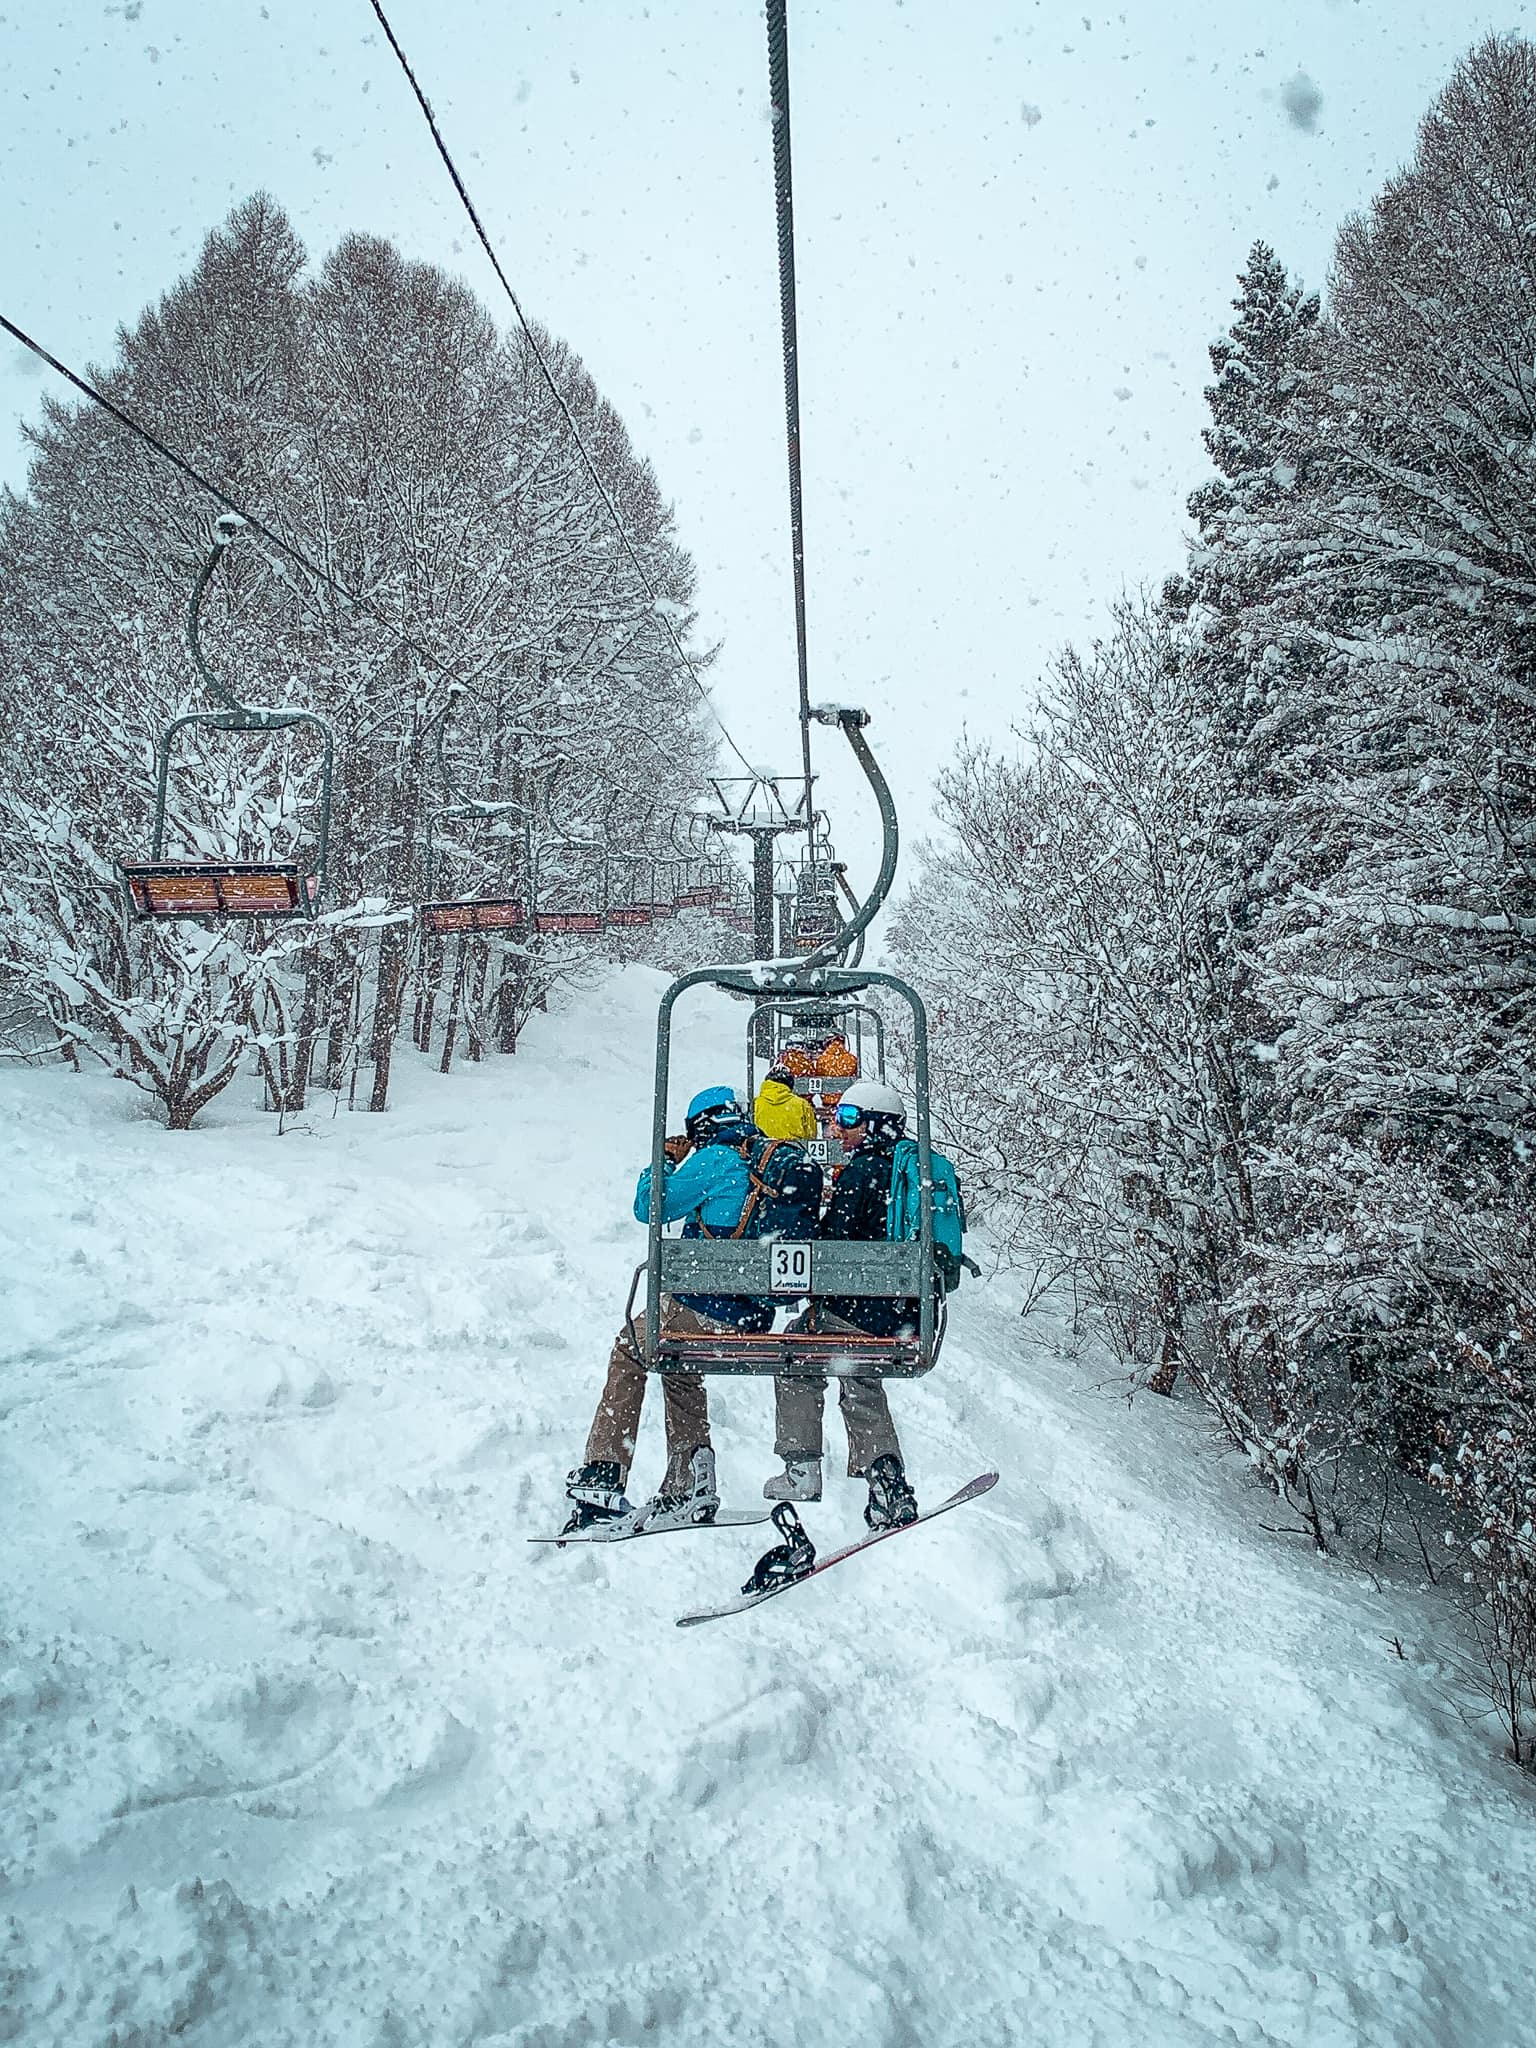 Chairlift while snowing hard during powder culture tour with First Tours